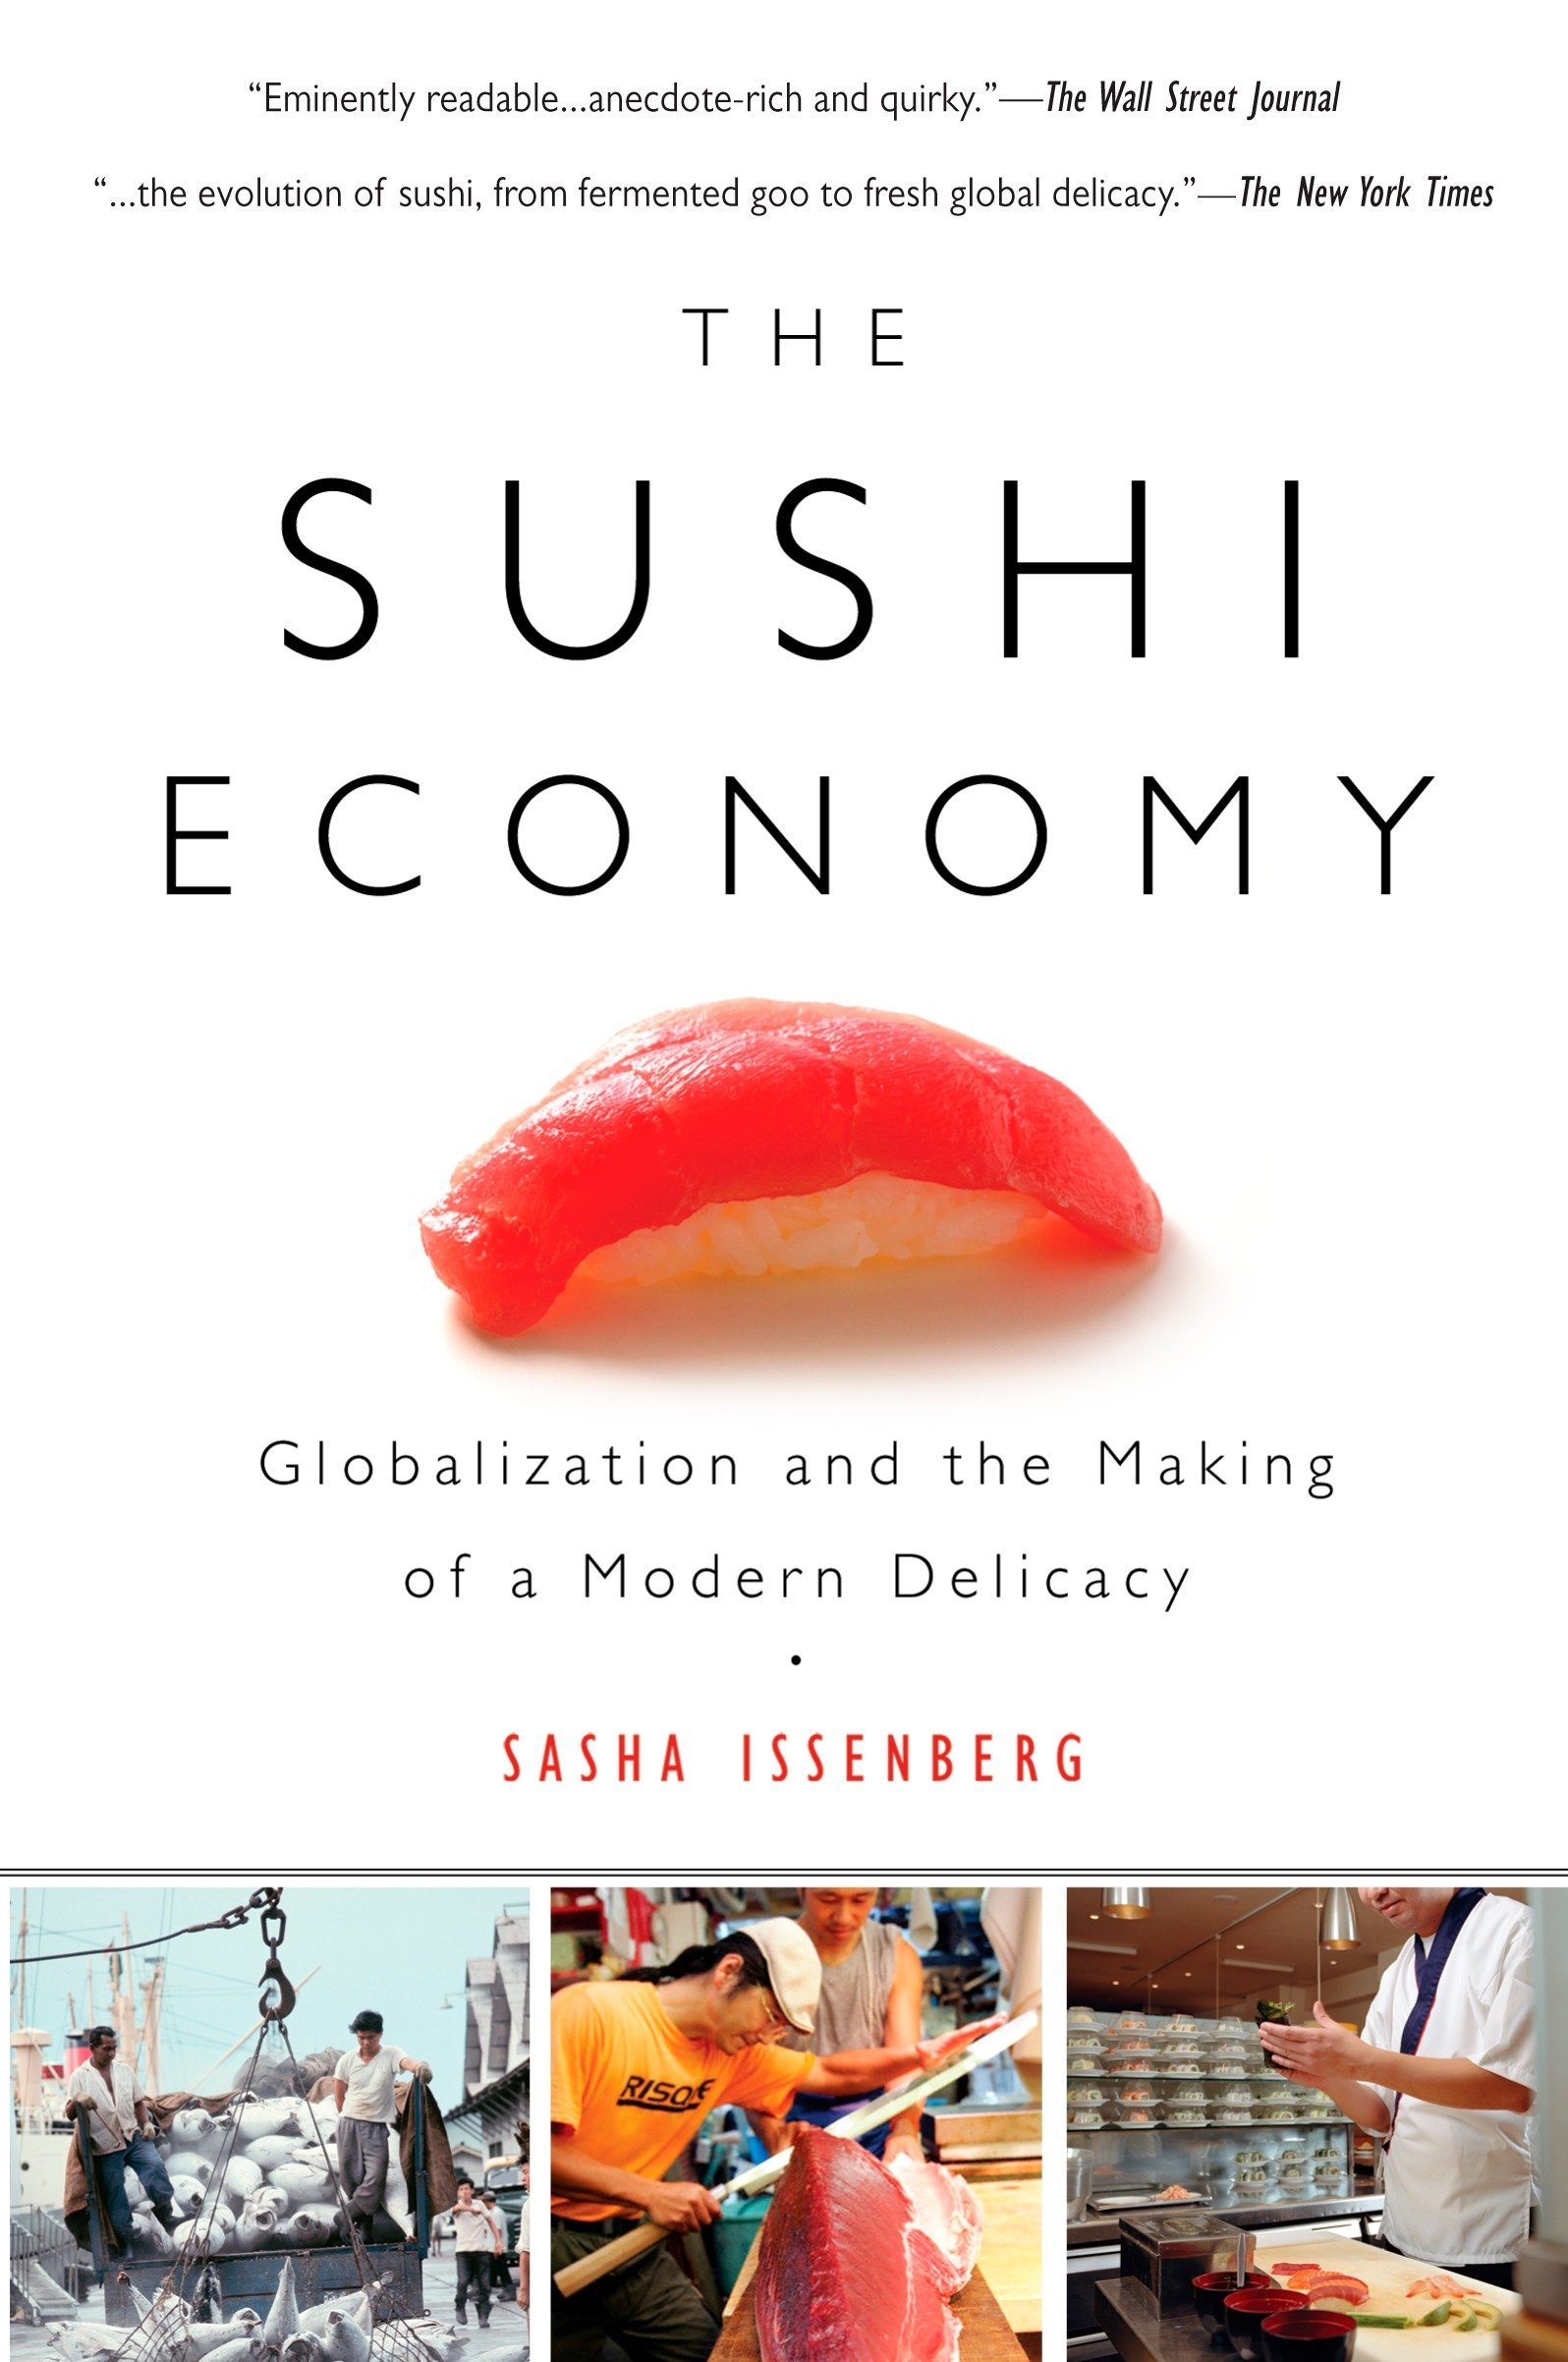 pictures The health snob's guide to raw fish